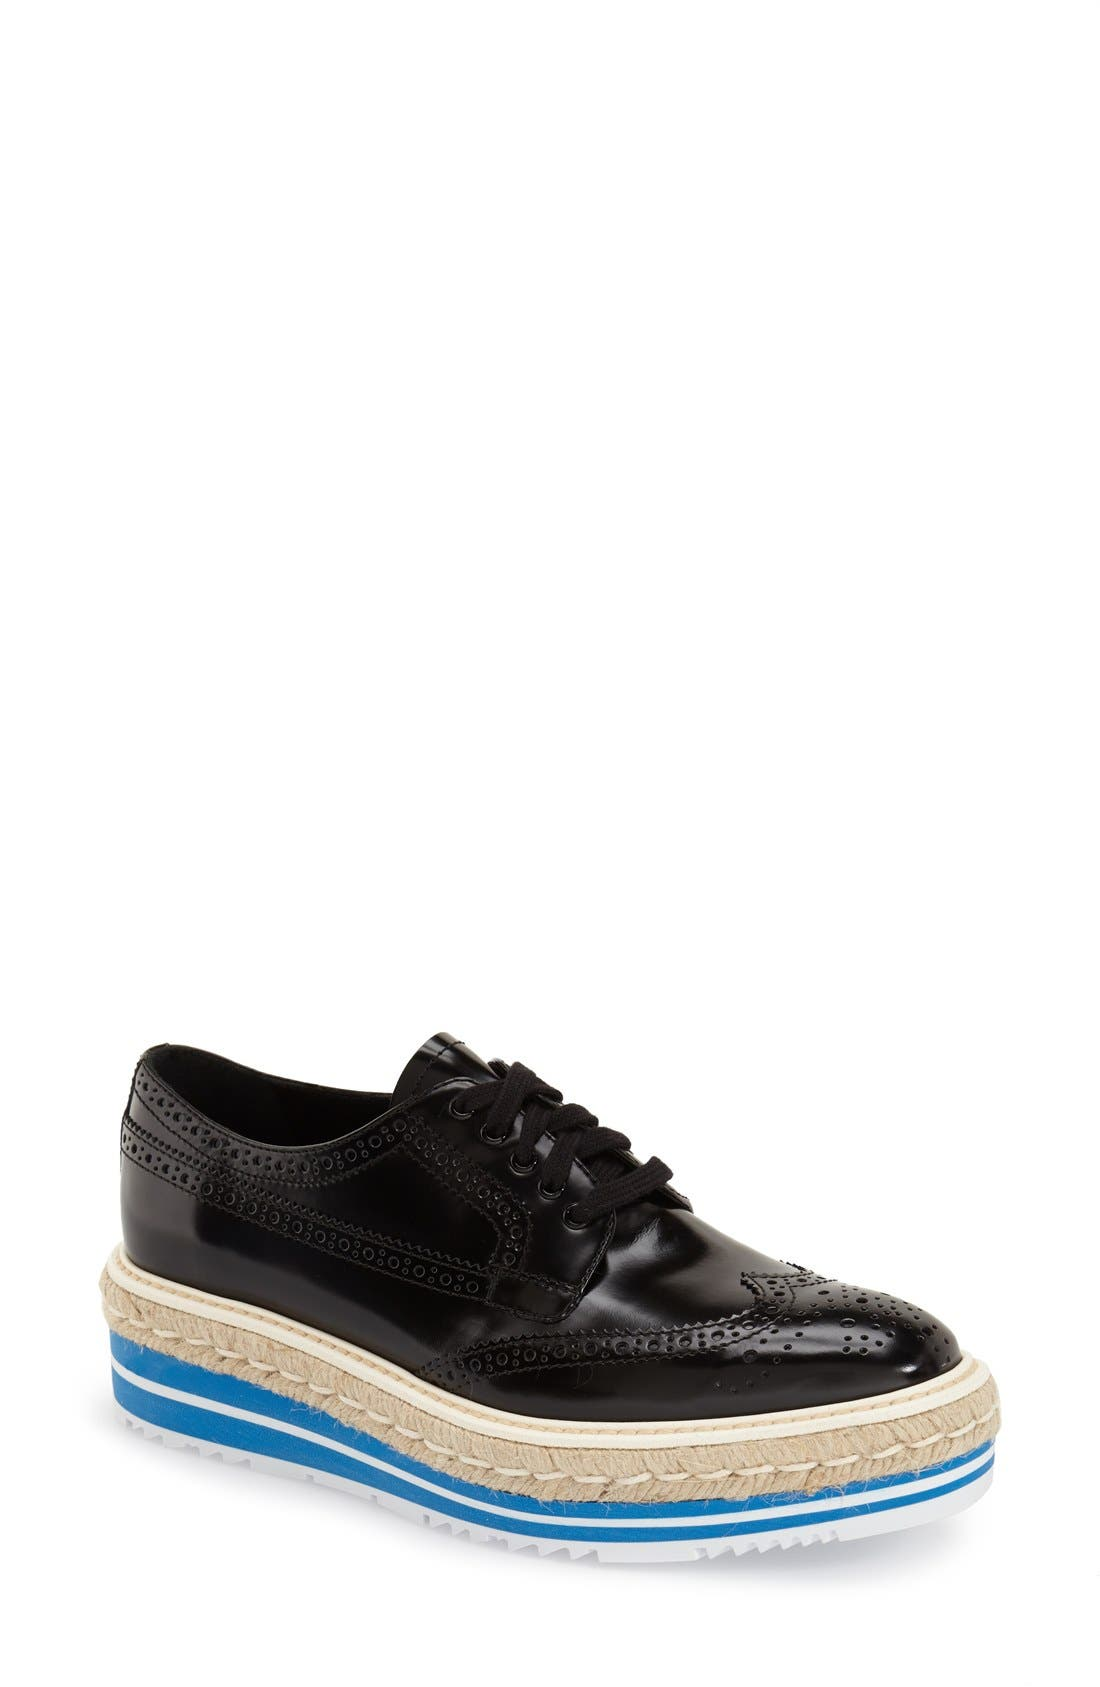 Prada Sport Oxford (Women)